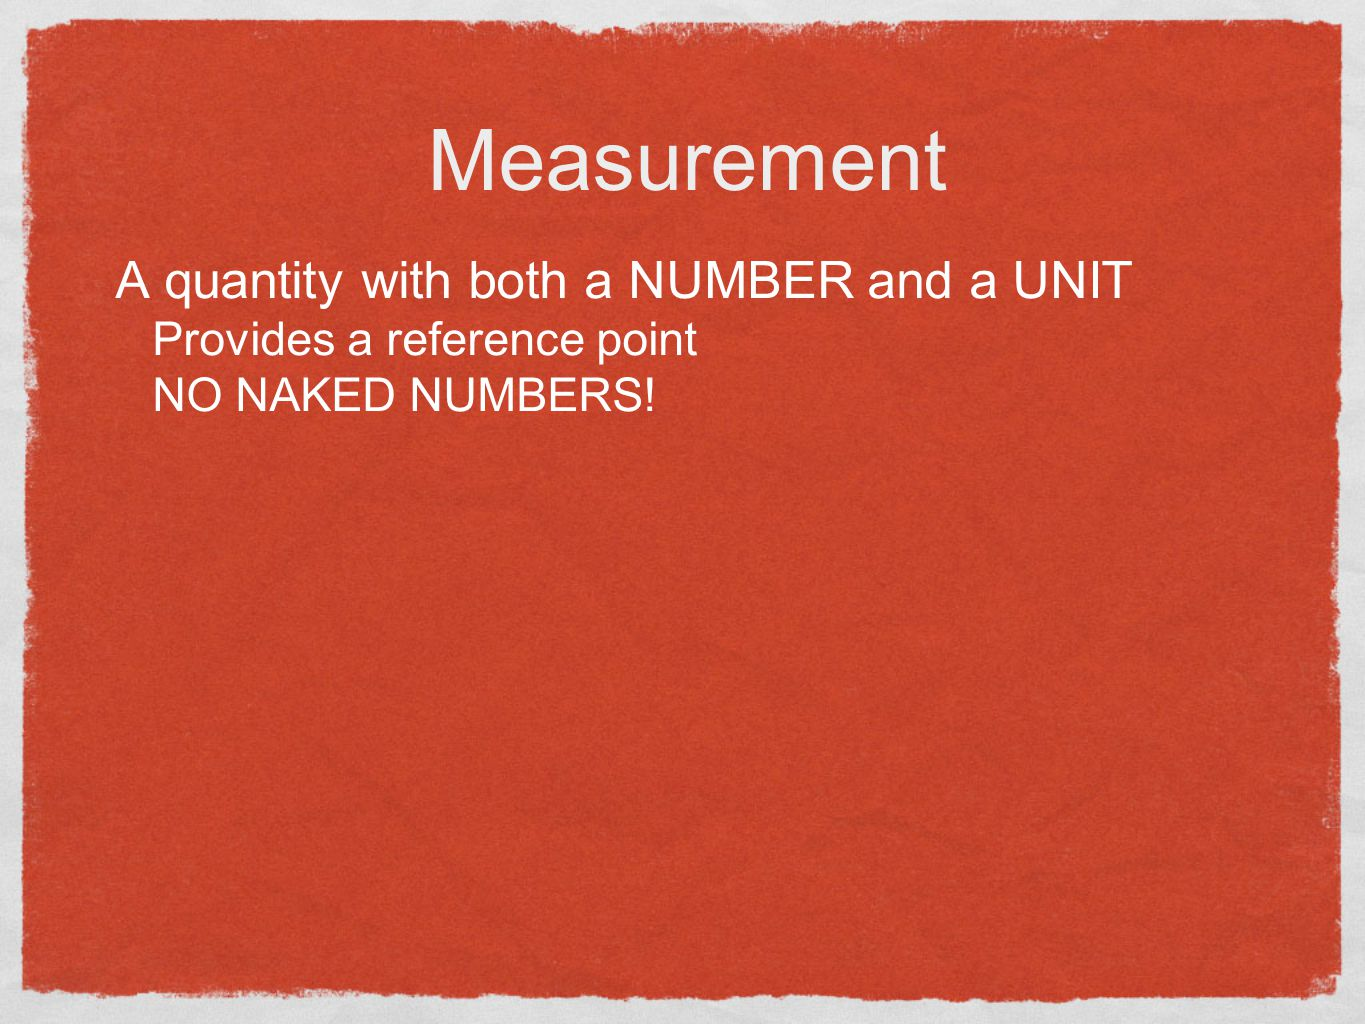 Measurement A quantity with both a NUMBER and a UNIT Provides a reference point NO NAKED NUMBERS!